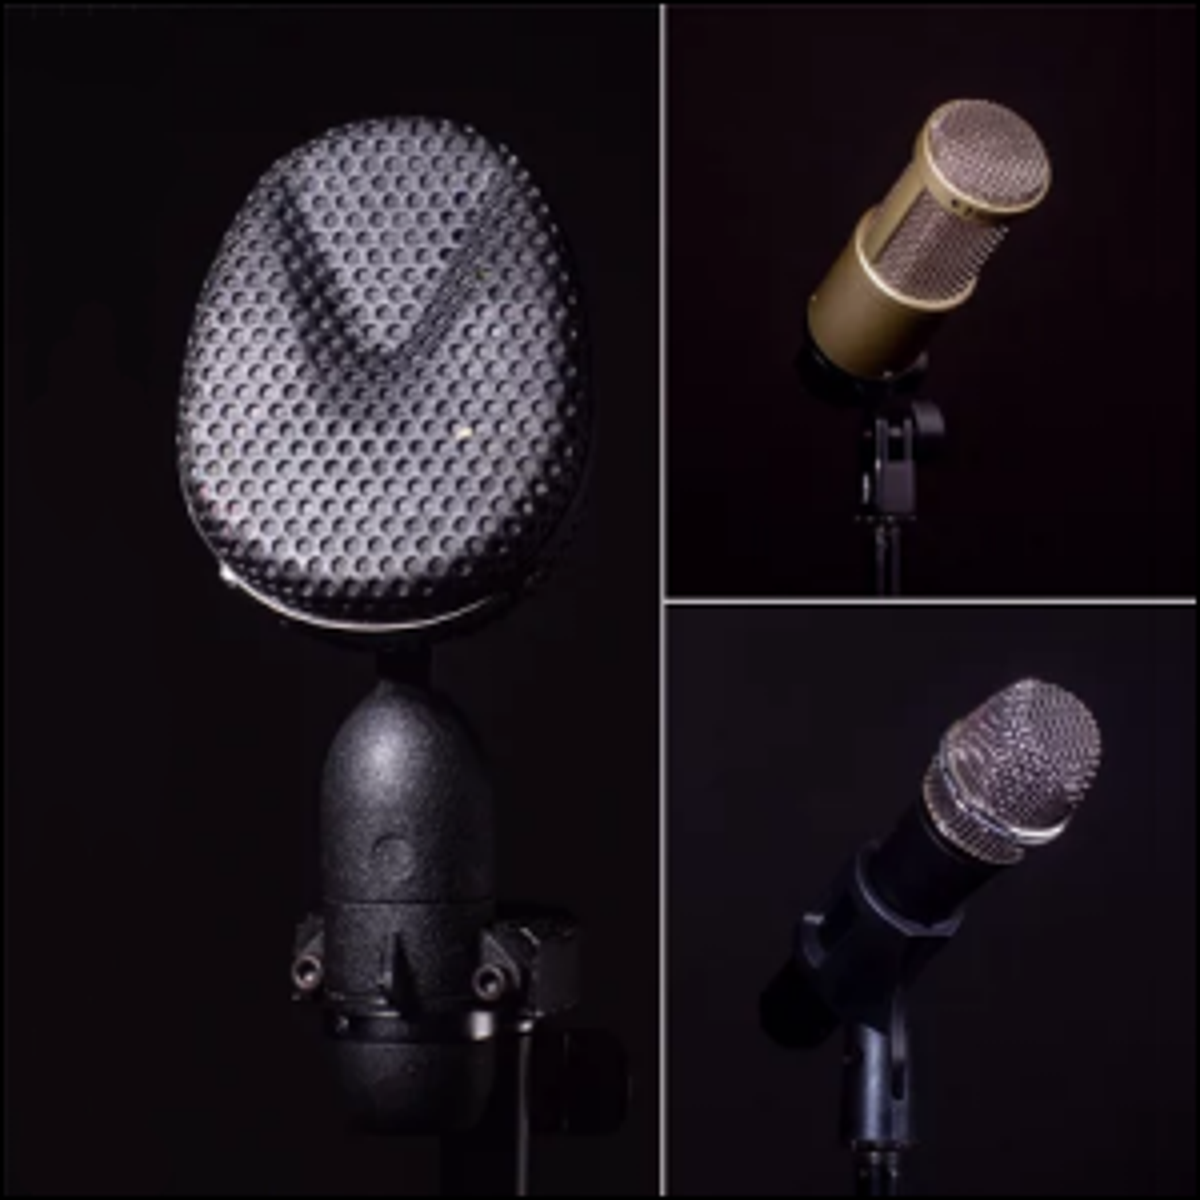 Some of the mics used by NPR (National Public Radio).